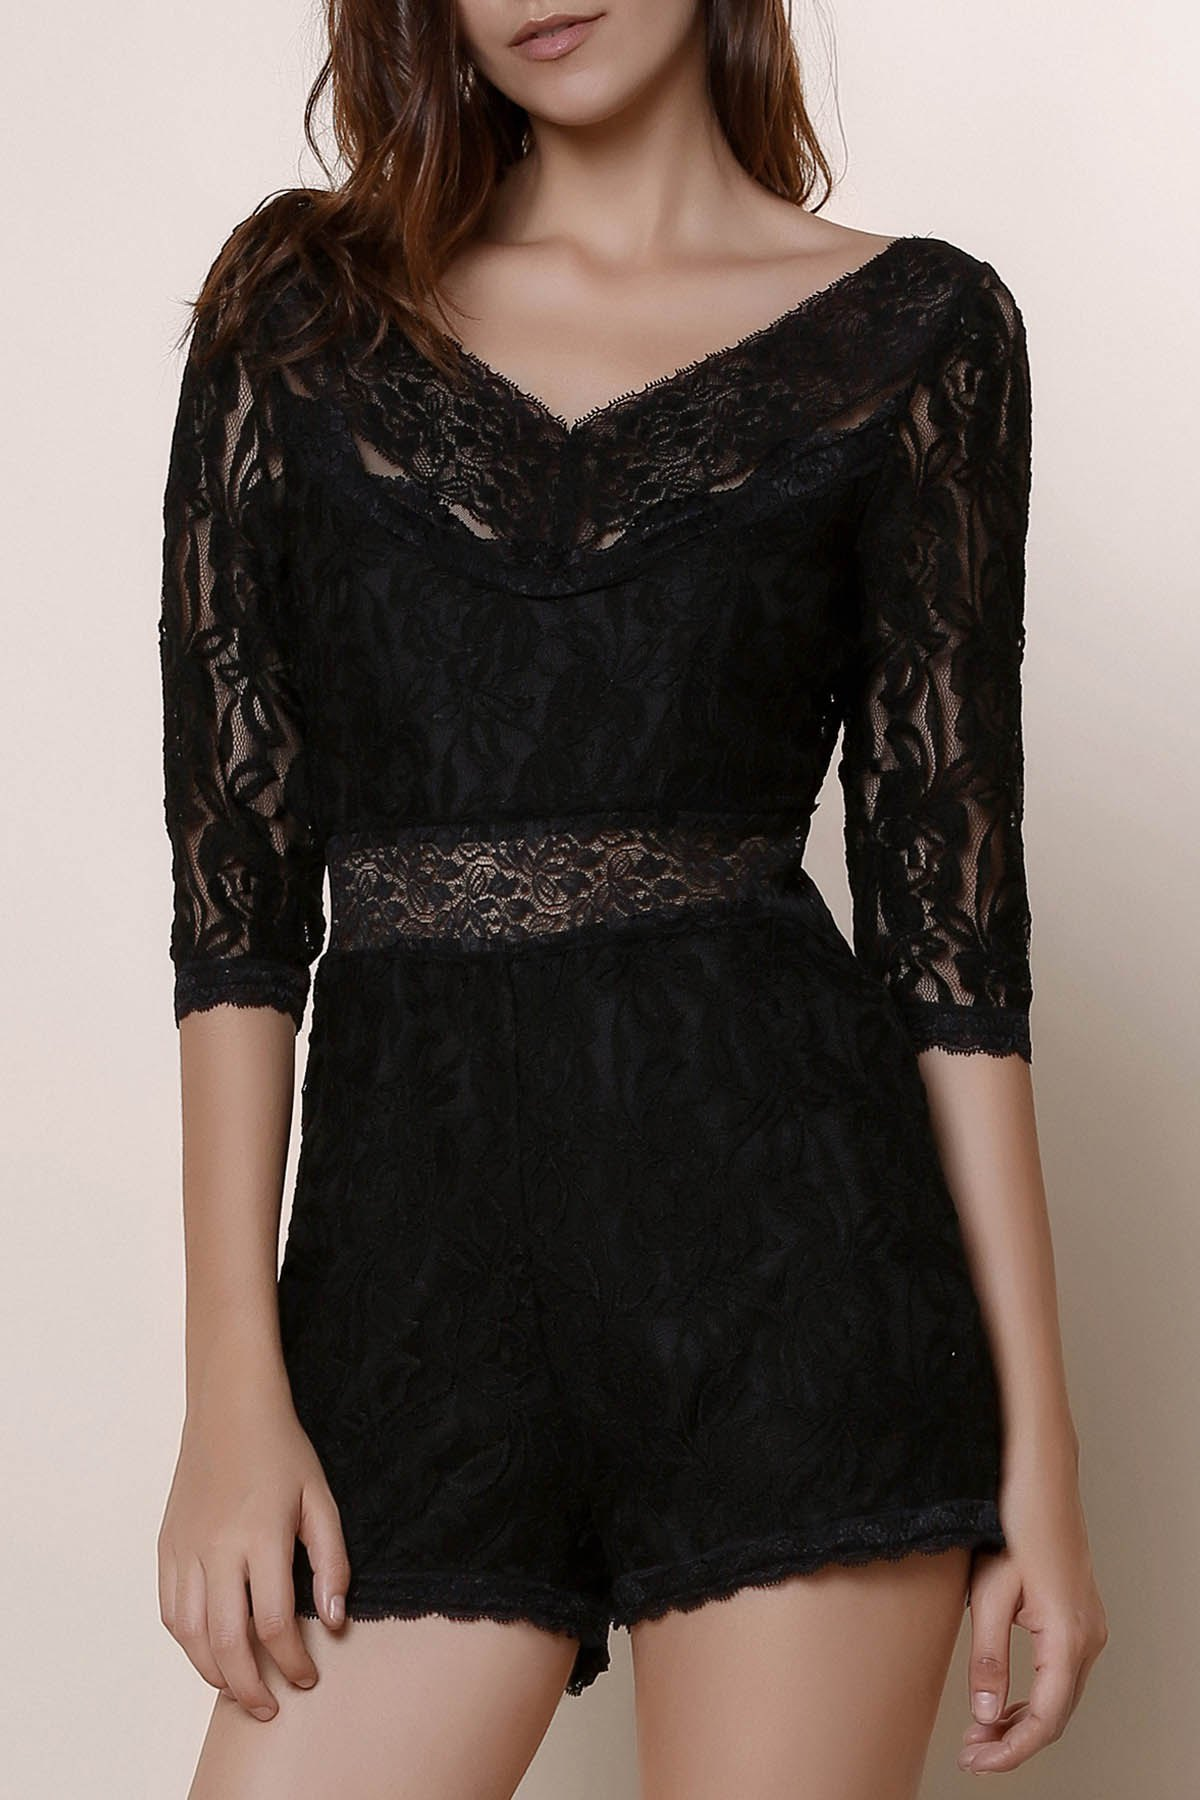 Trendy Trendy V-Neck 3/4 Sleeve See-Through Lace Romper For Women